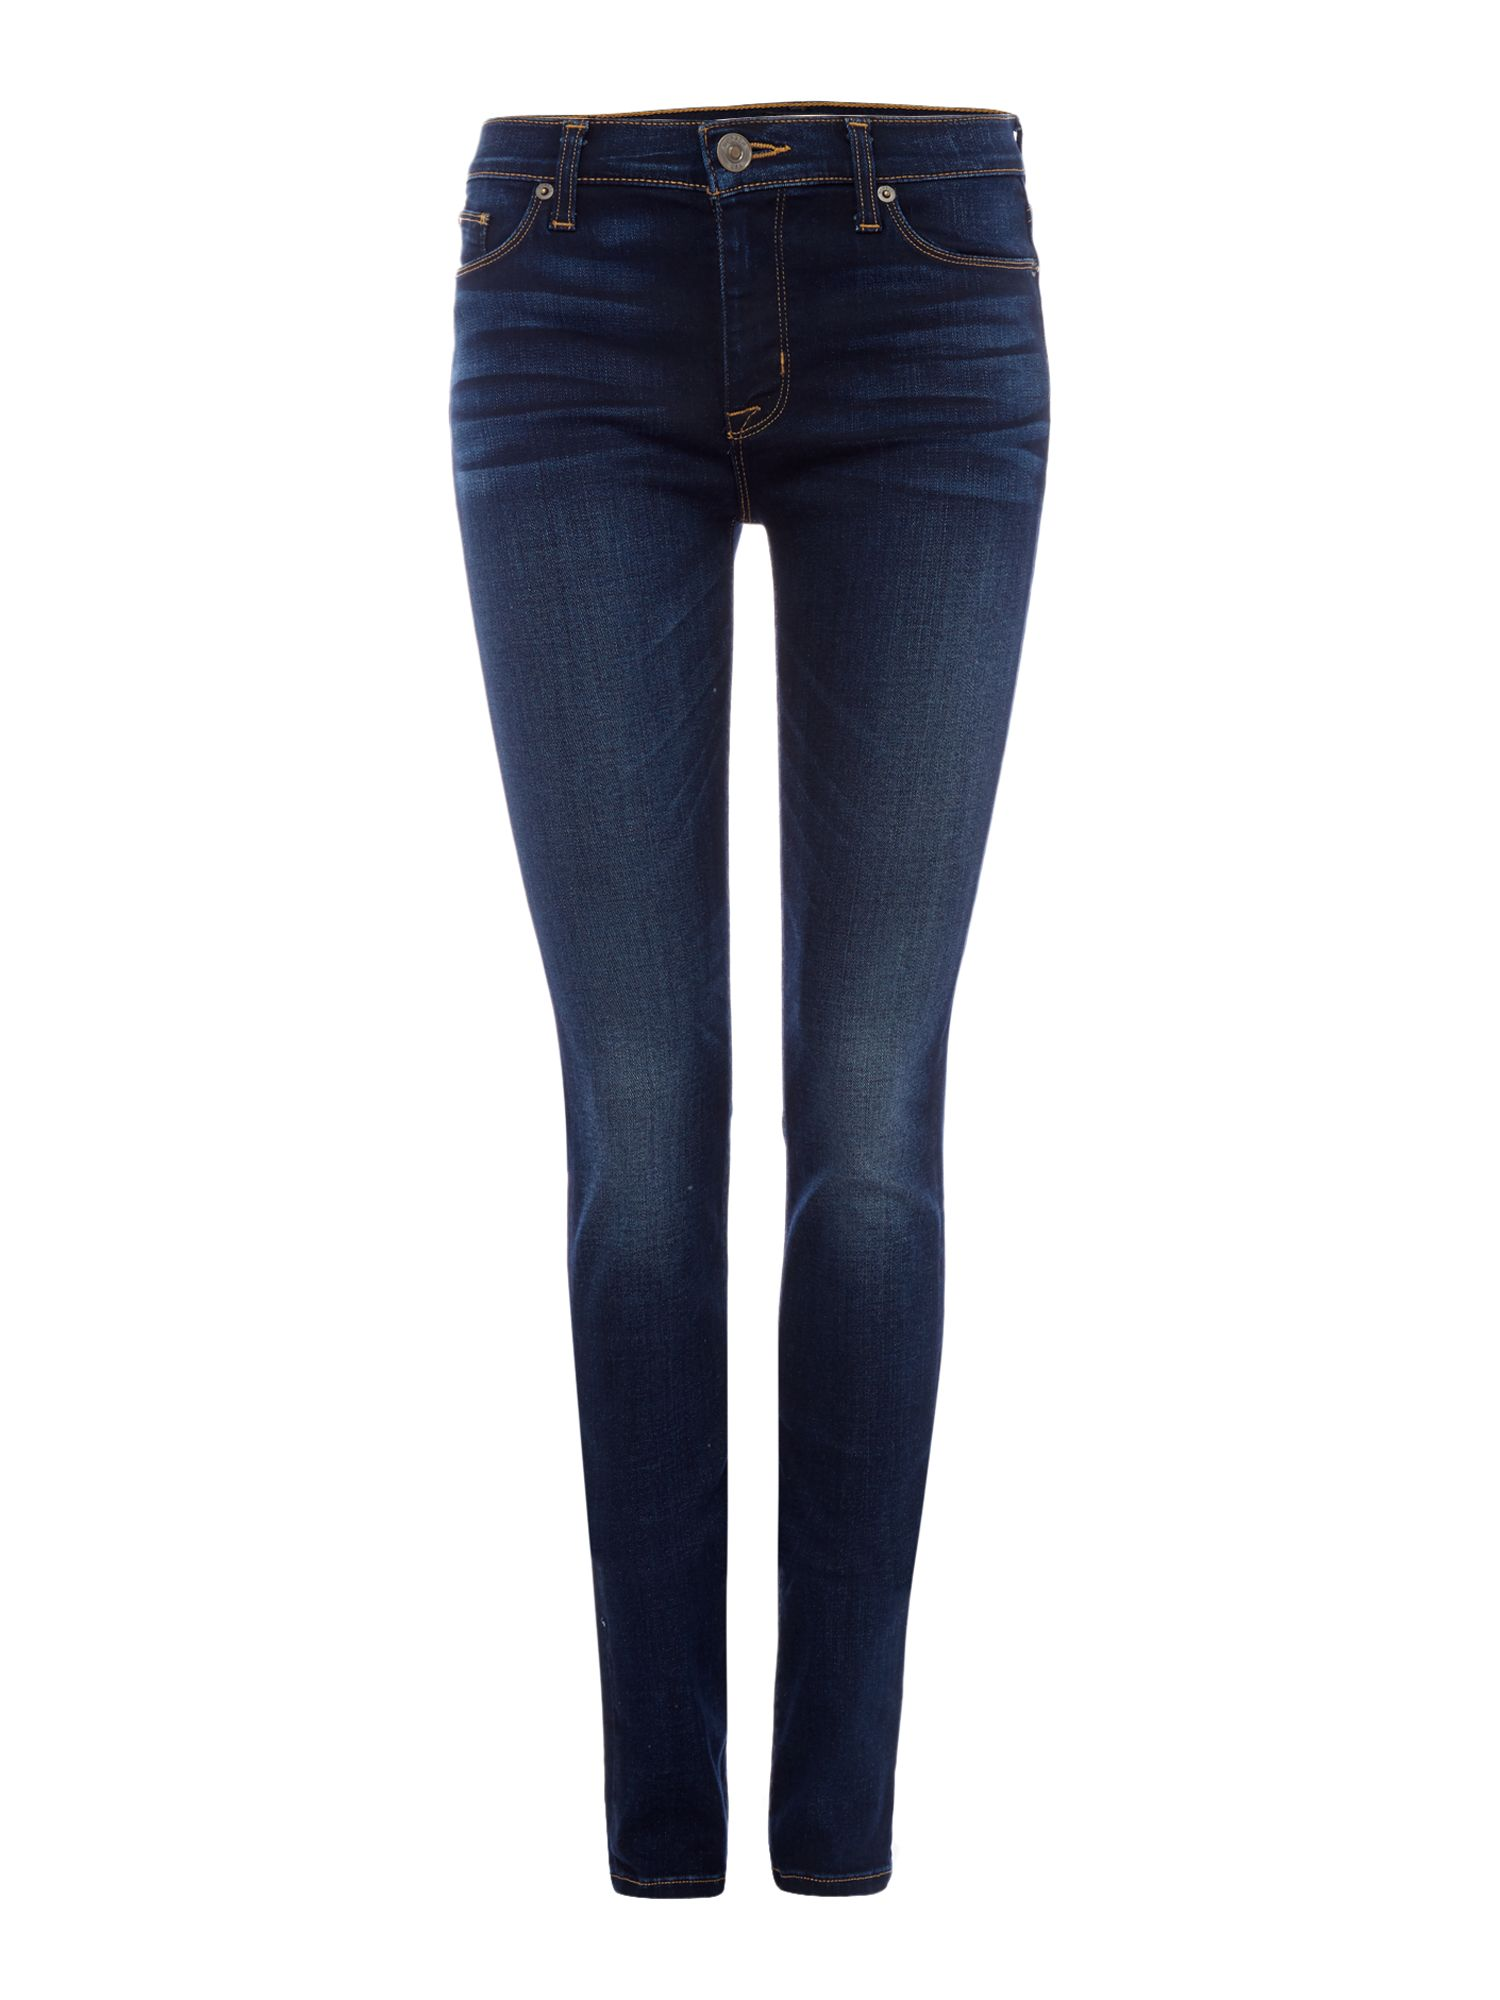 Hudson Jeans Ciara highrise exposed button jeans in black Denim